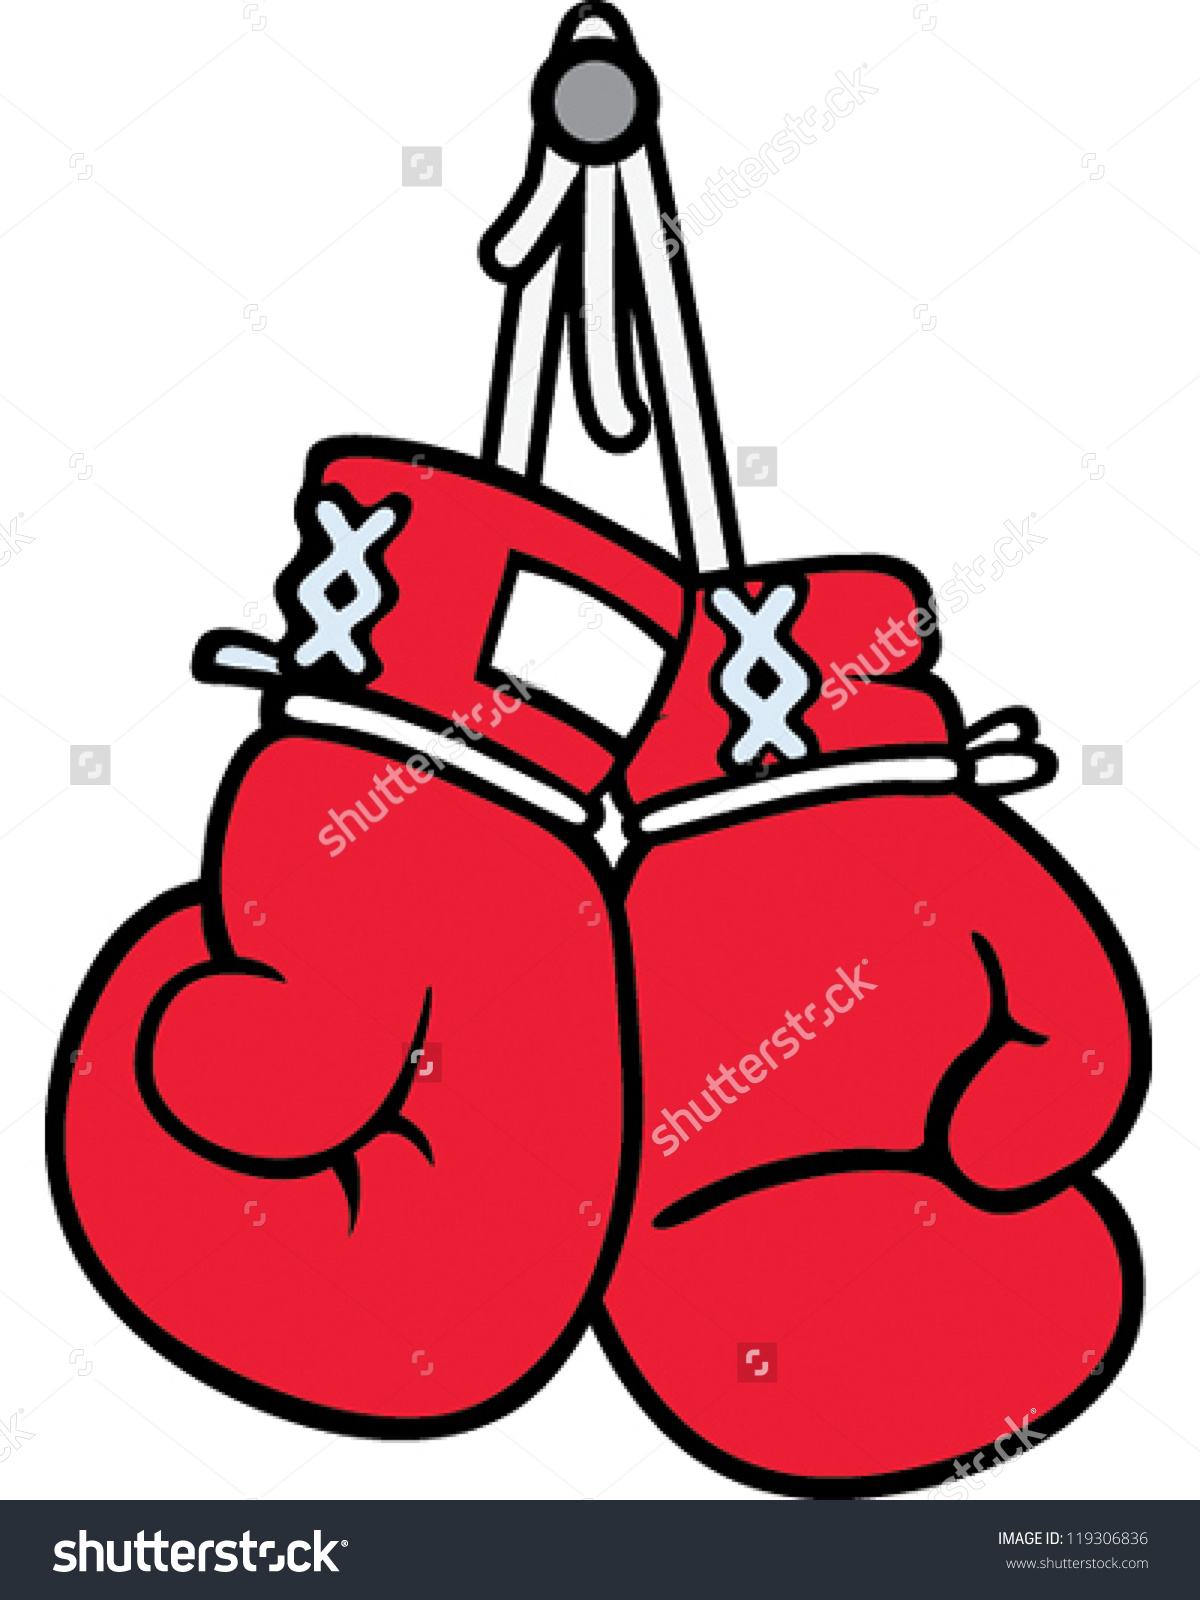 Boxing gloves clipart image royalty free stock Red Boxing Gloves Clipart (35 ) - Free Clipart image royalty free stock